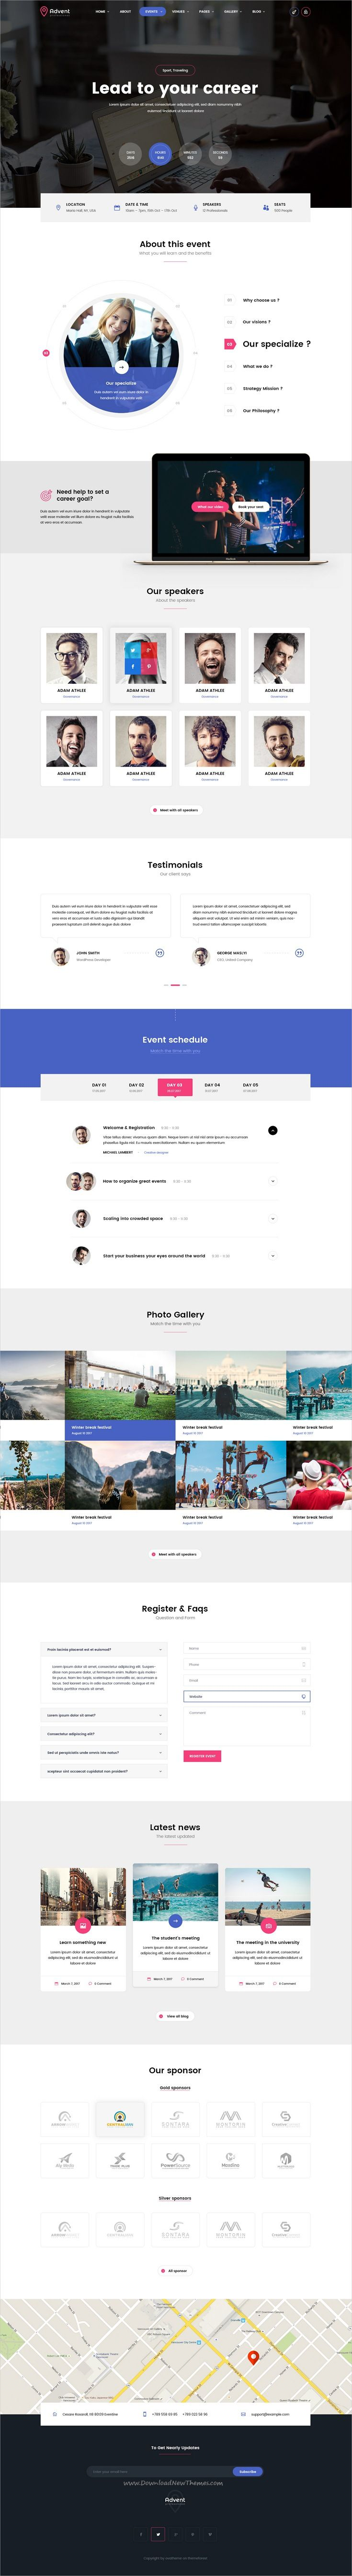 Advent is clean and modern design PSD template for #conference and #event management company website with 8 homepage layouts & 53 layered PSD pages download now #webdevelopment